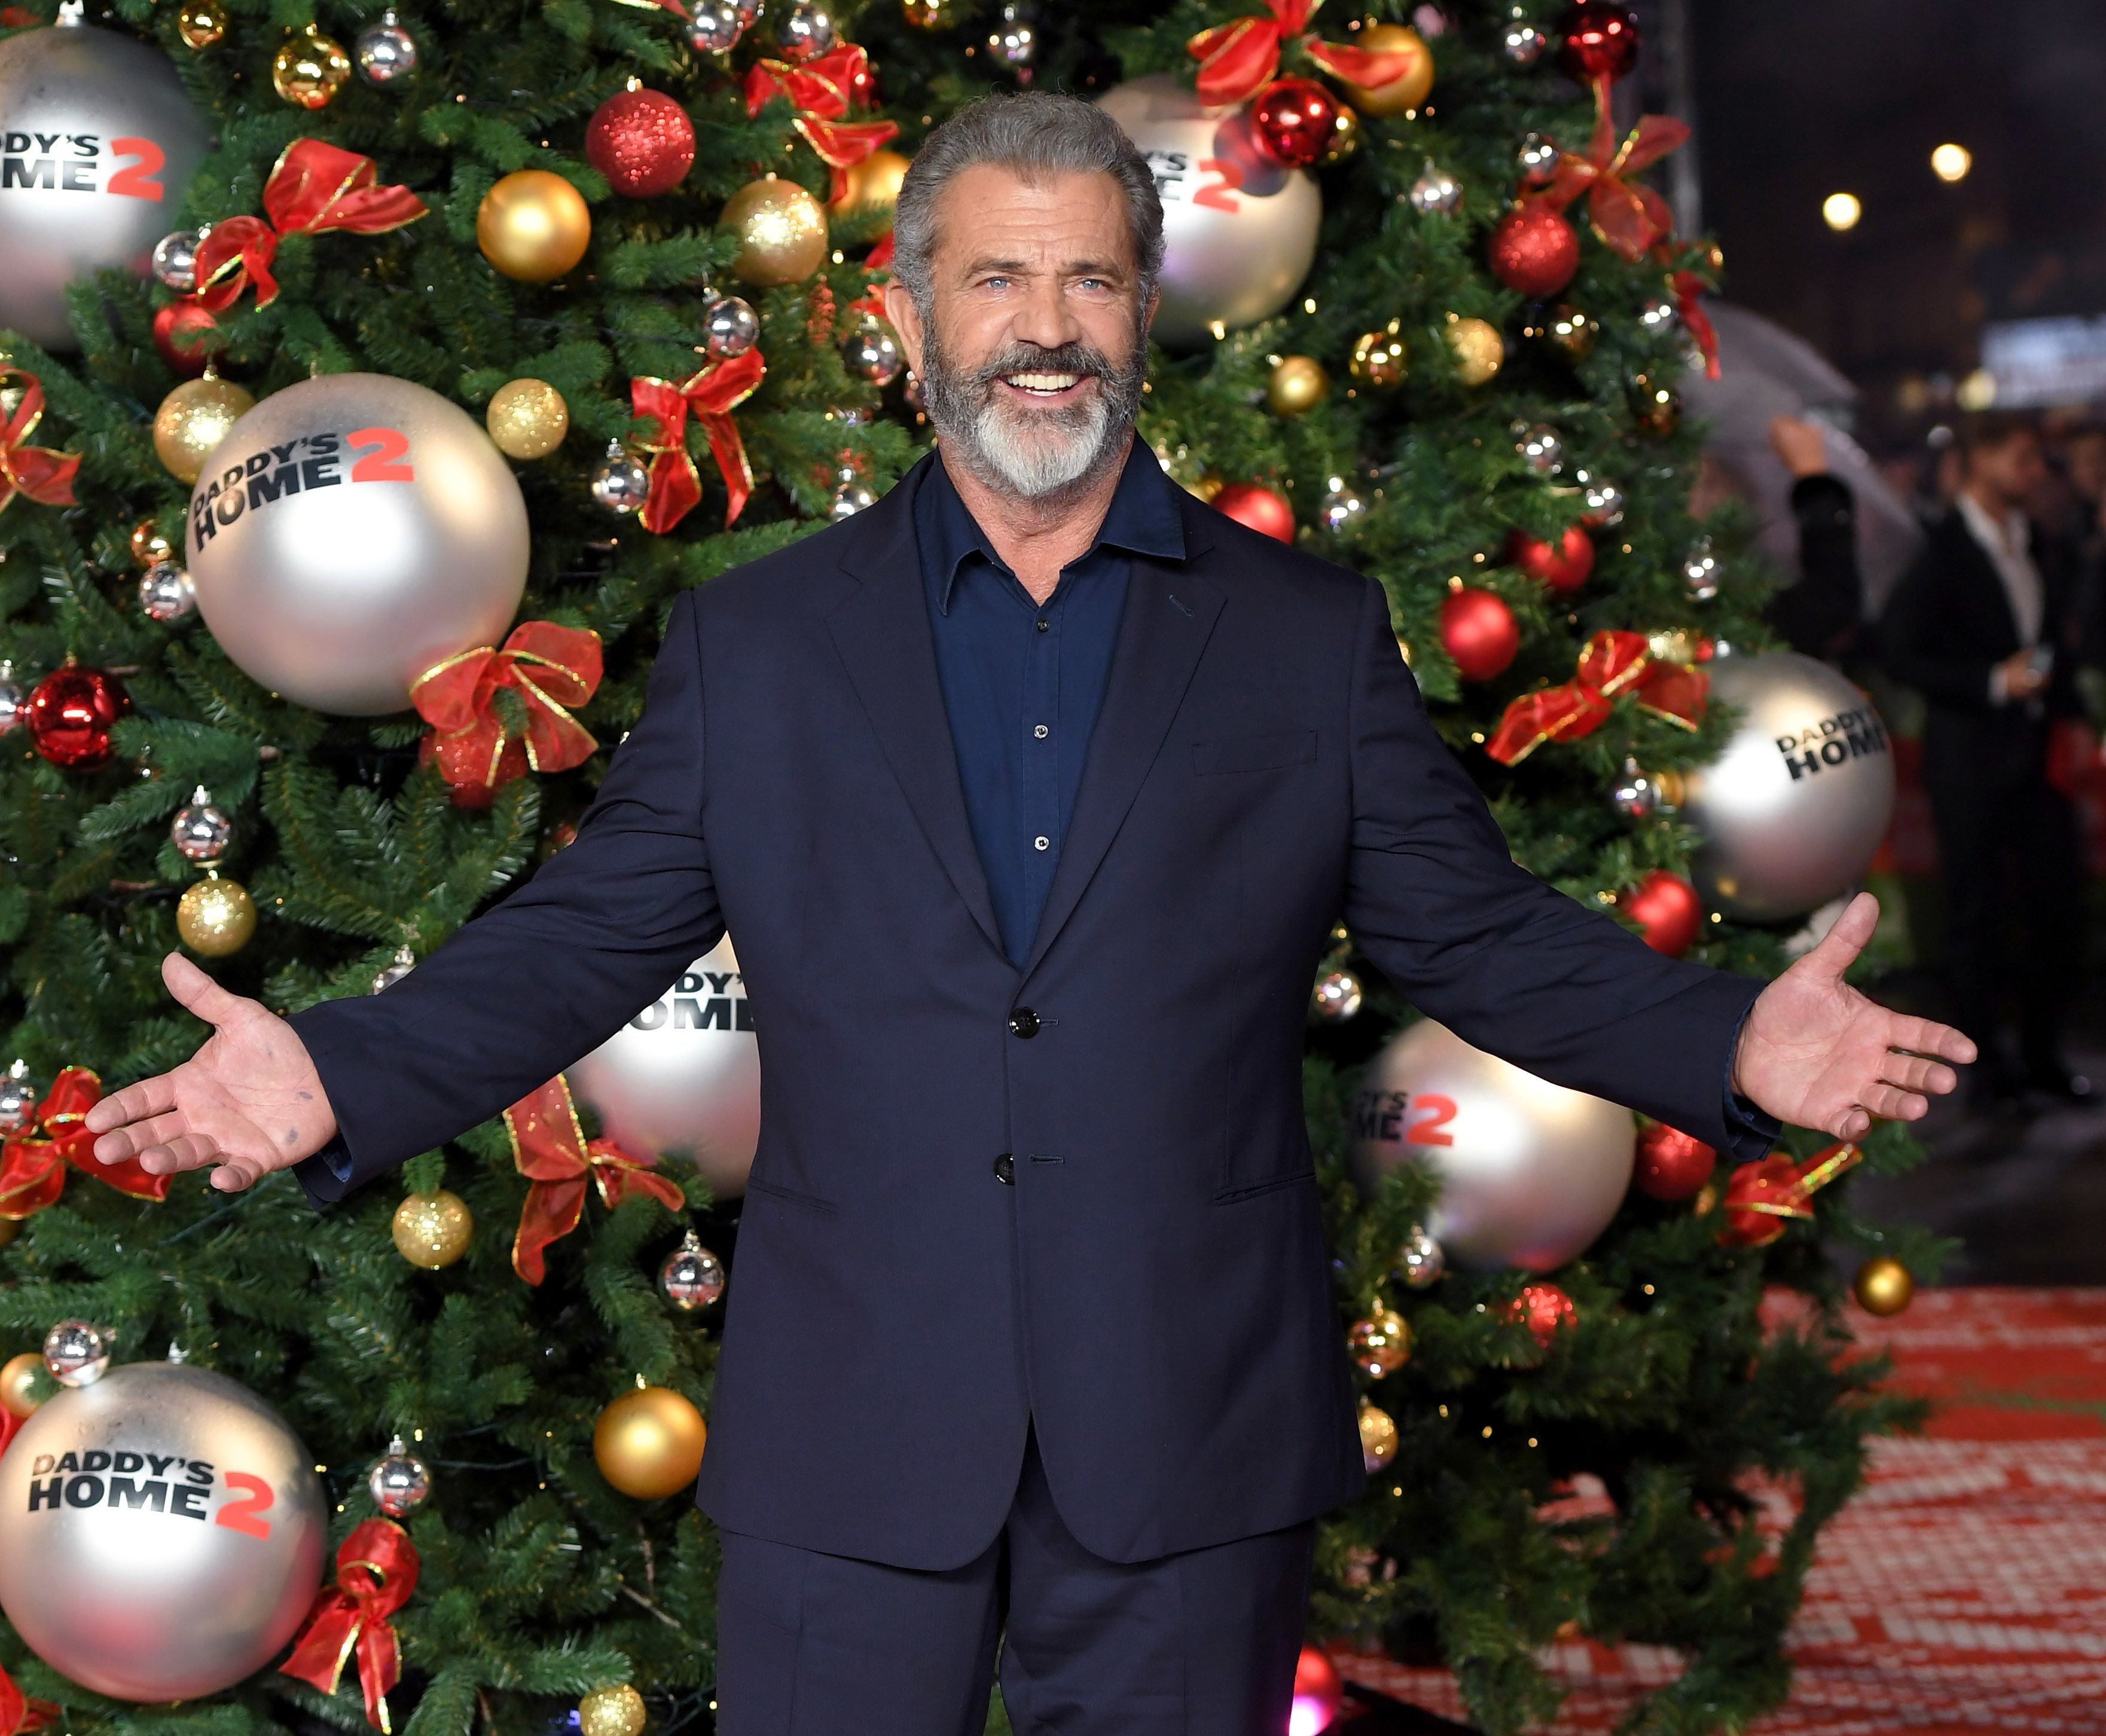 Mel Gibson Sure Hopes Weinstein Misconduct Reports Are 'Precursor To Change'